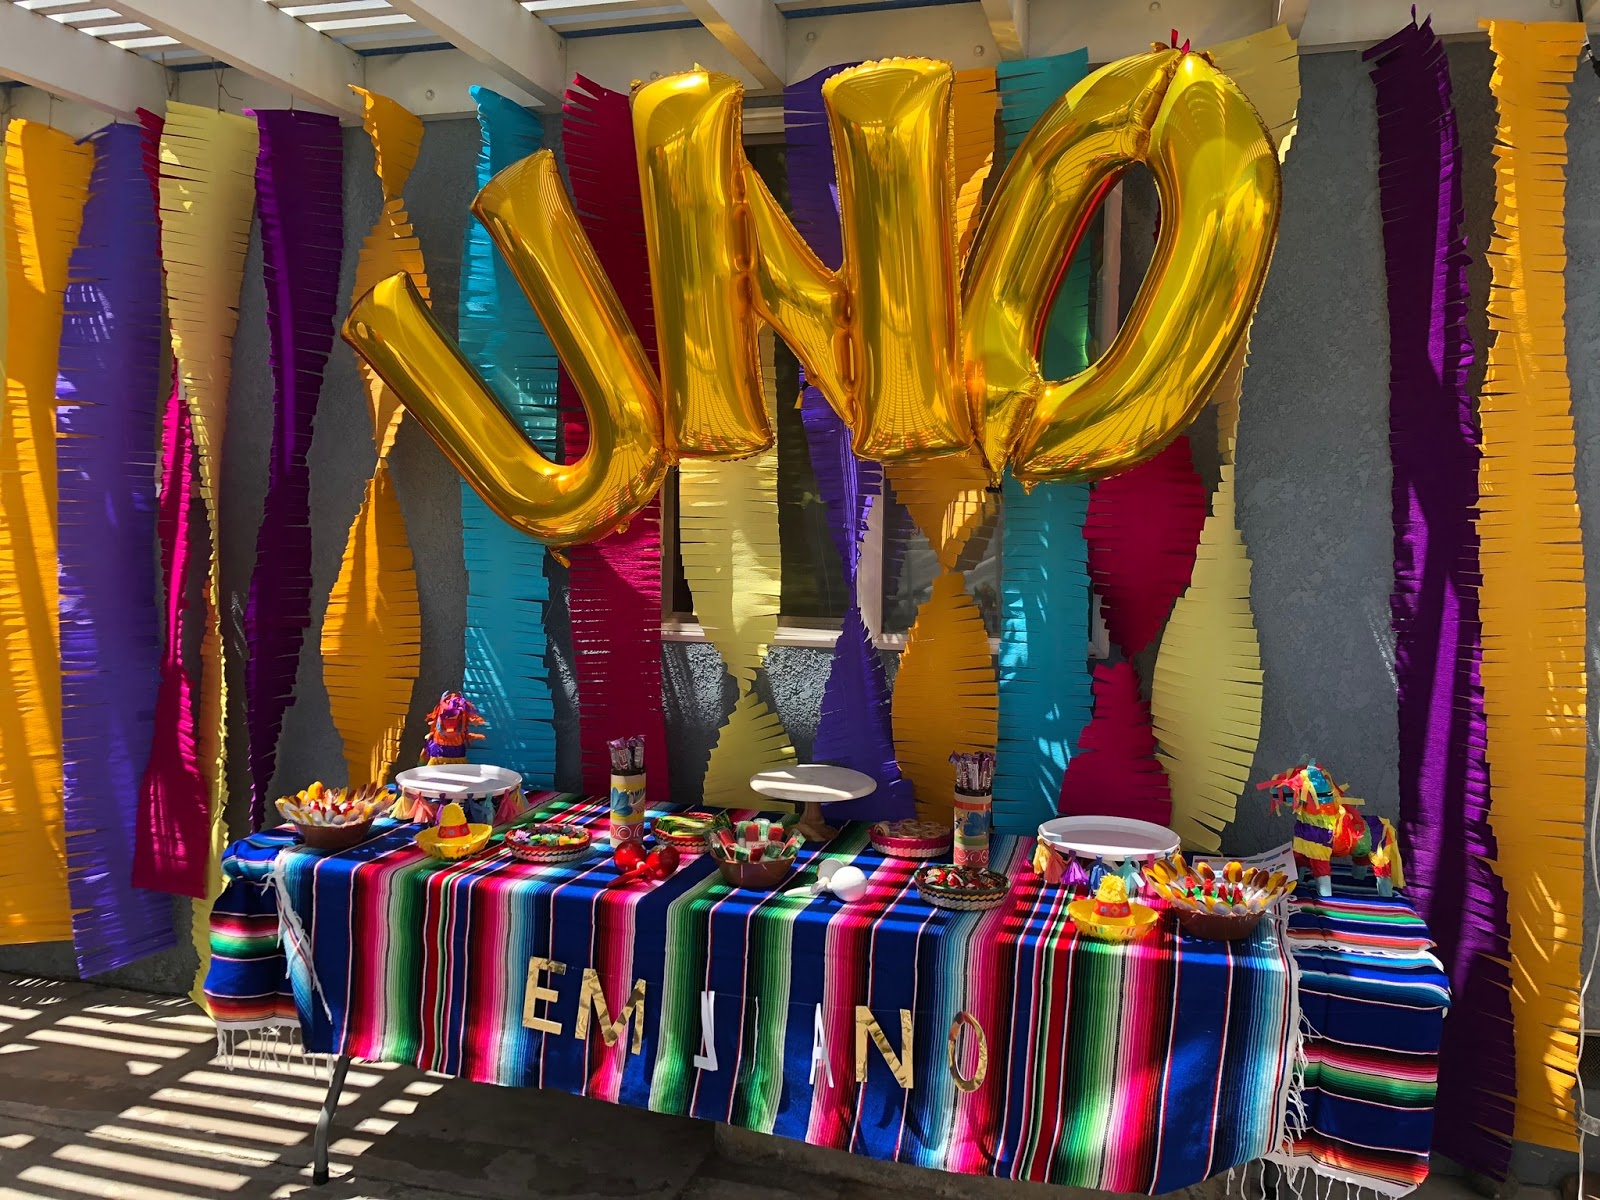 Priya the Blog, Nashville lifestyle blog, Nashville lifestyle blogger, Summer 2019, Summer travel, first birthday party, first birthday fiesta, Southern California travel, Florida travel